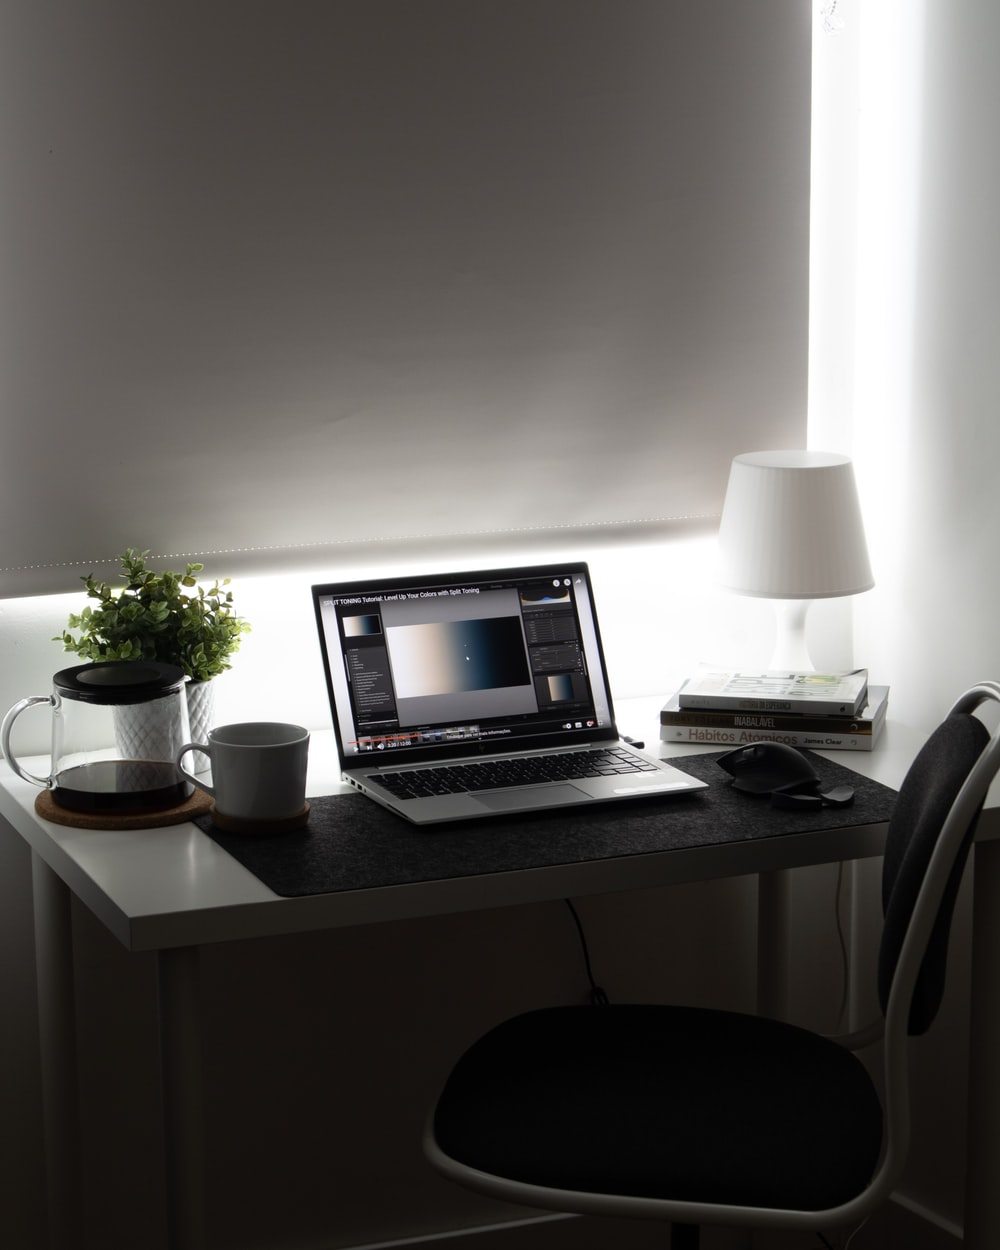 macbook pro on white wooden table